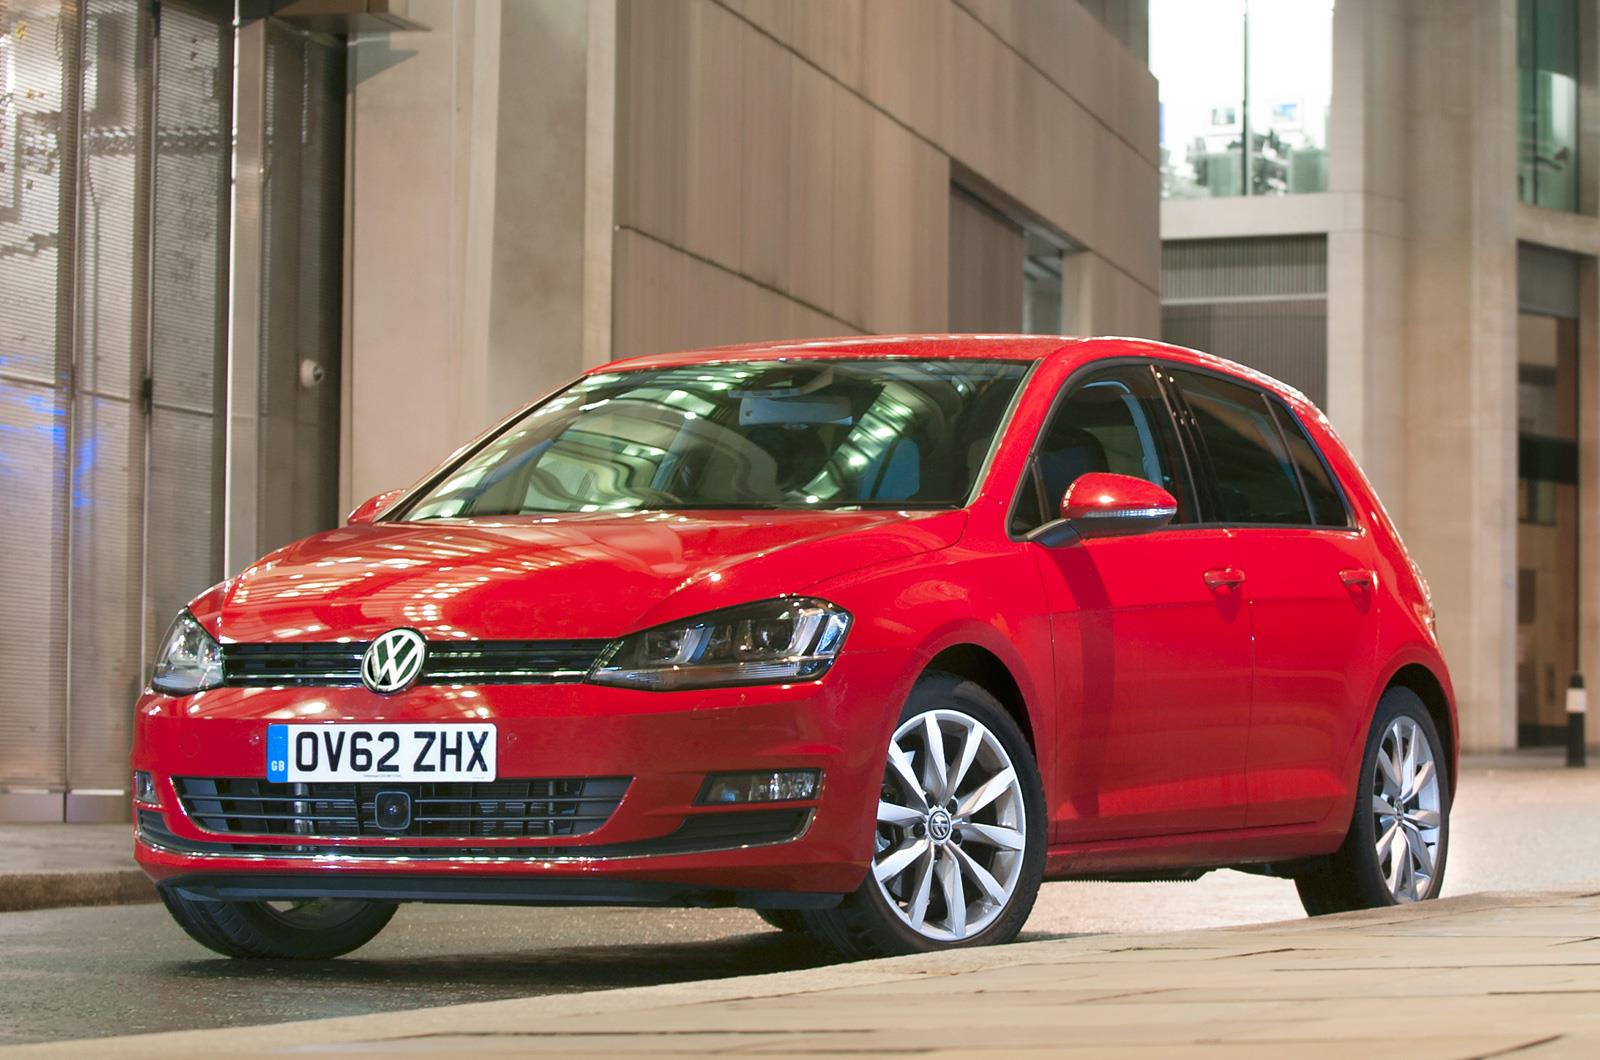 VW Golf crowned European Car of the Year 2013